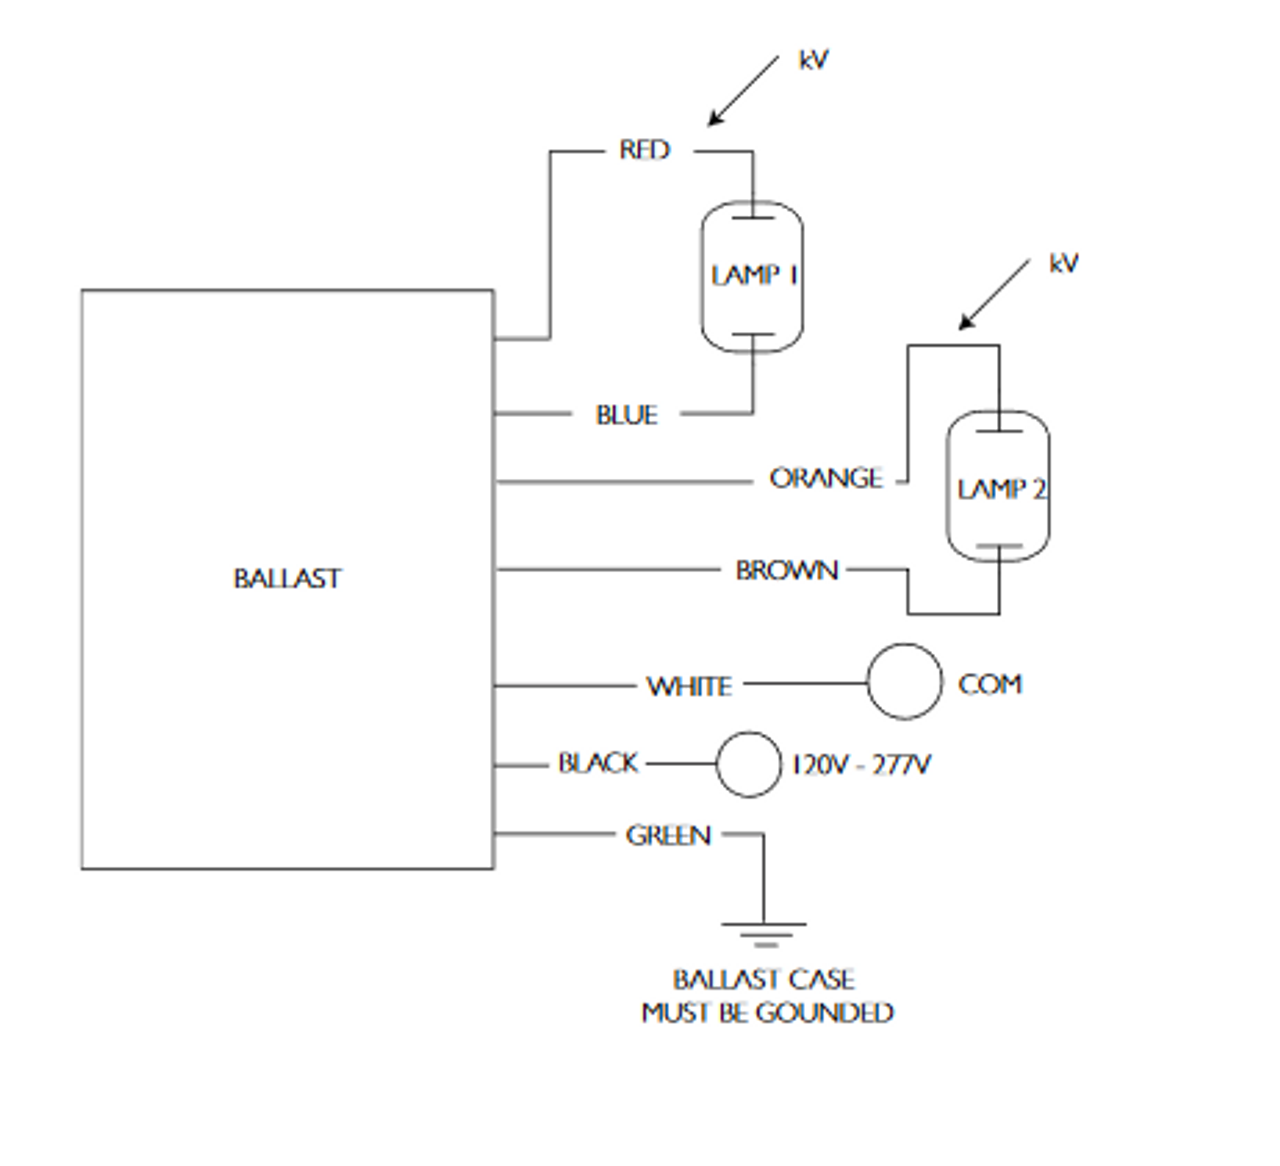 light metal halide ballast wiring schematic imh 239 a bls advance 39w electronic metal halide ballast  advance 39w electronic metal halide ballast